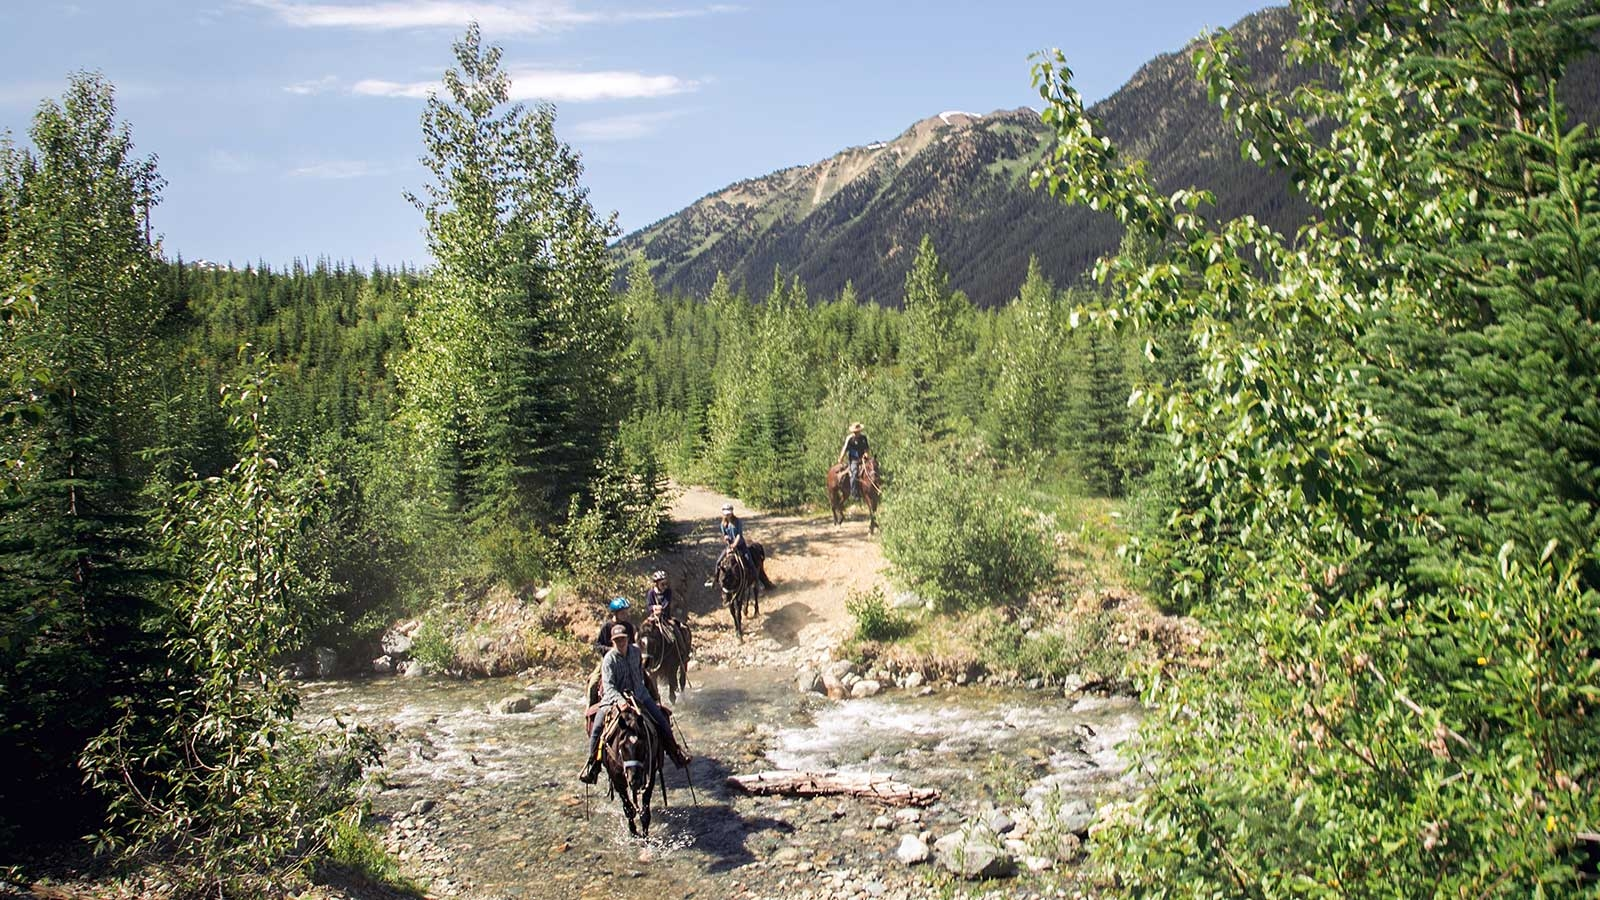 group of horseback riders crossing a stream in lush greenery and mountain range close to Pemberton in the background